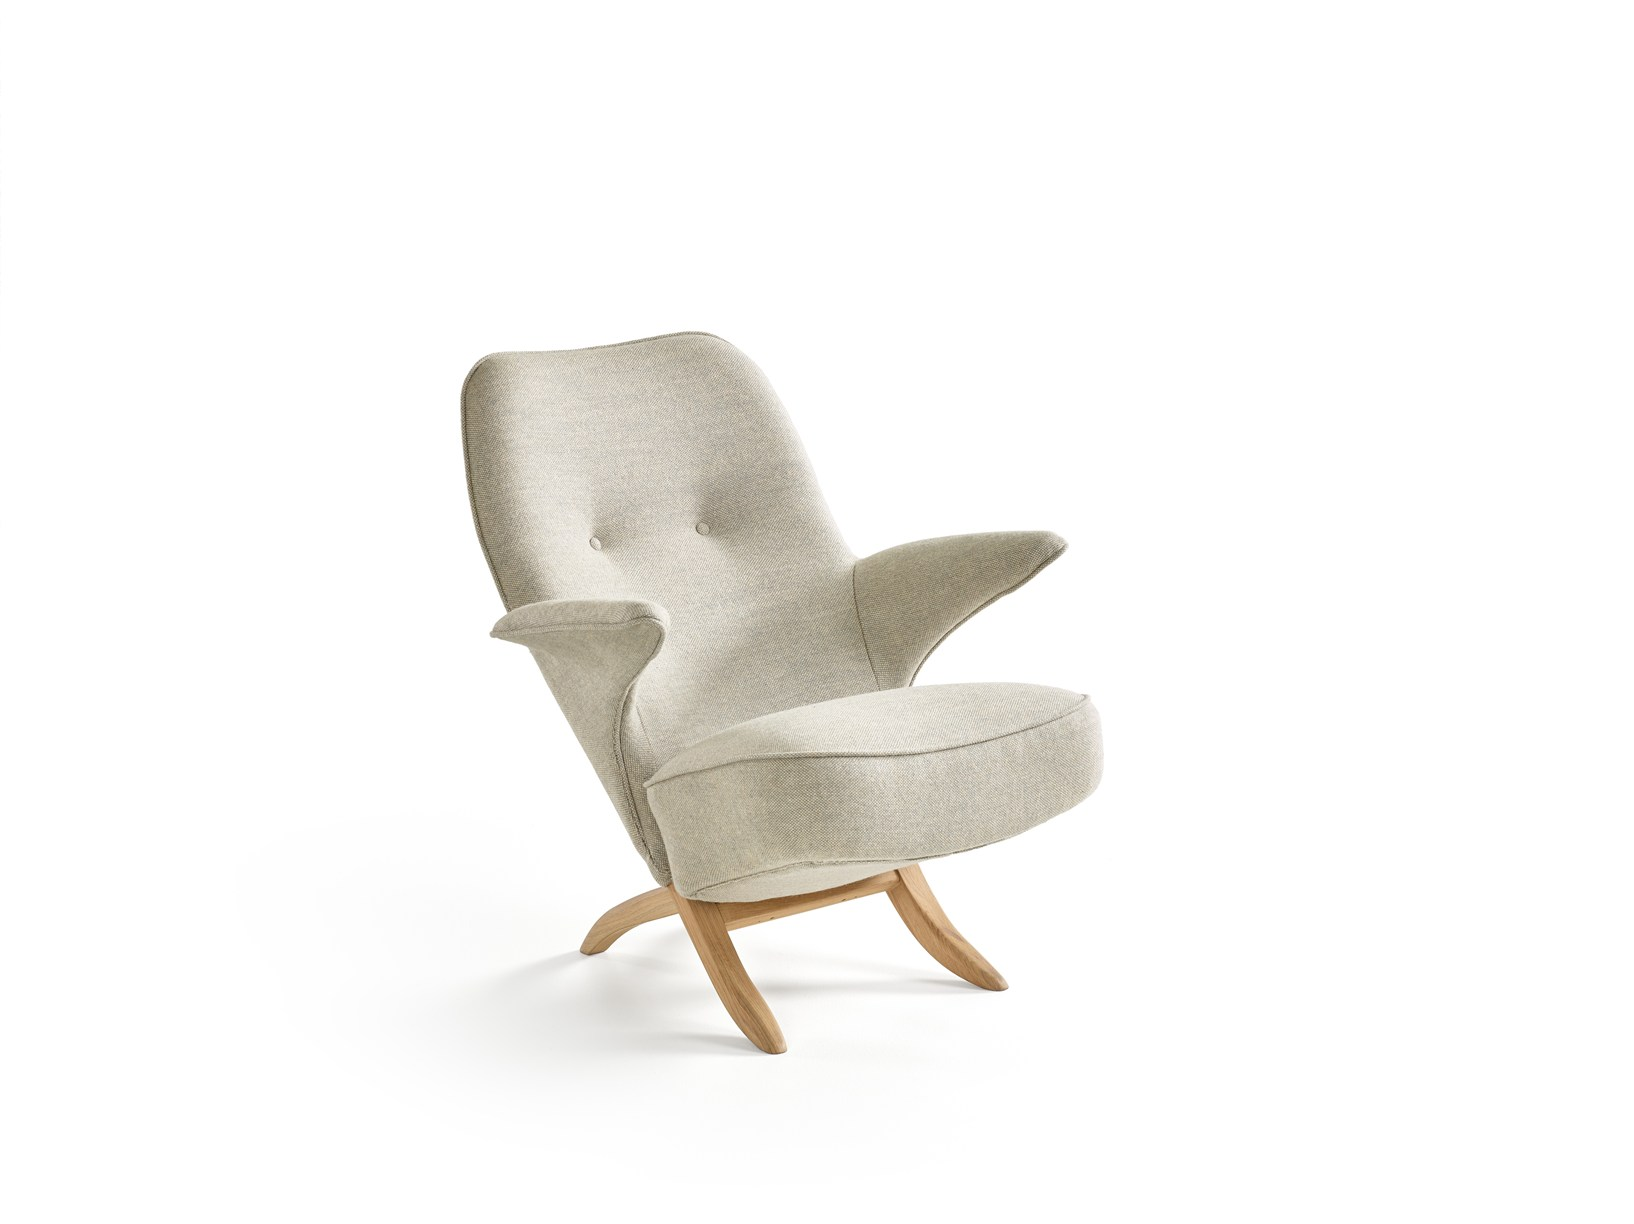 Pinguïn Chair by Theo Ruth for Artifort